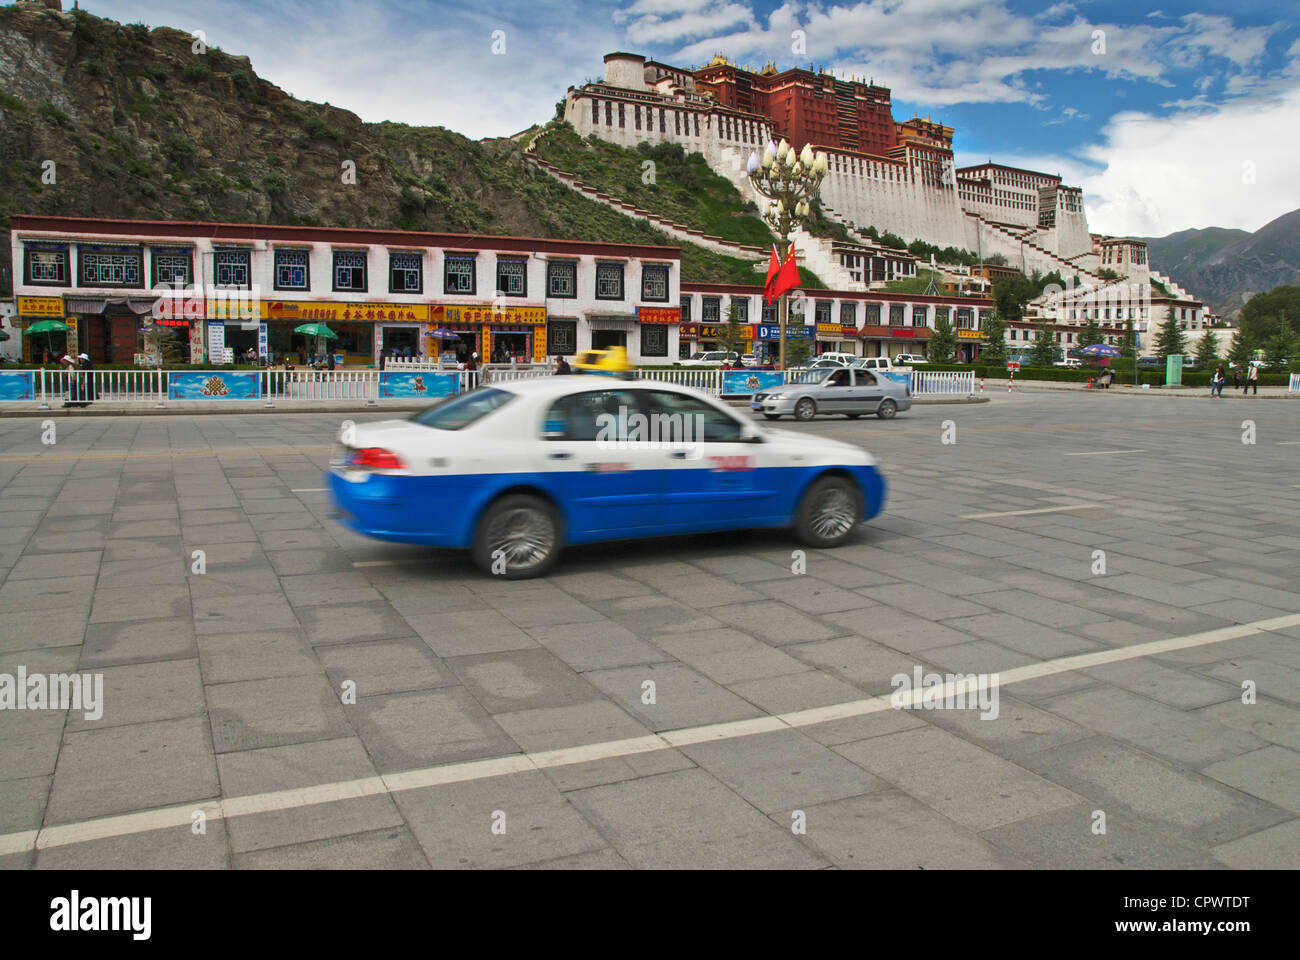 Potala and Taxi - Stock Image